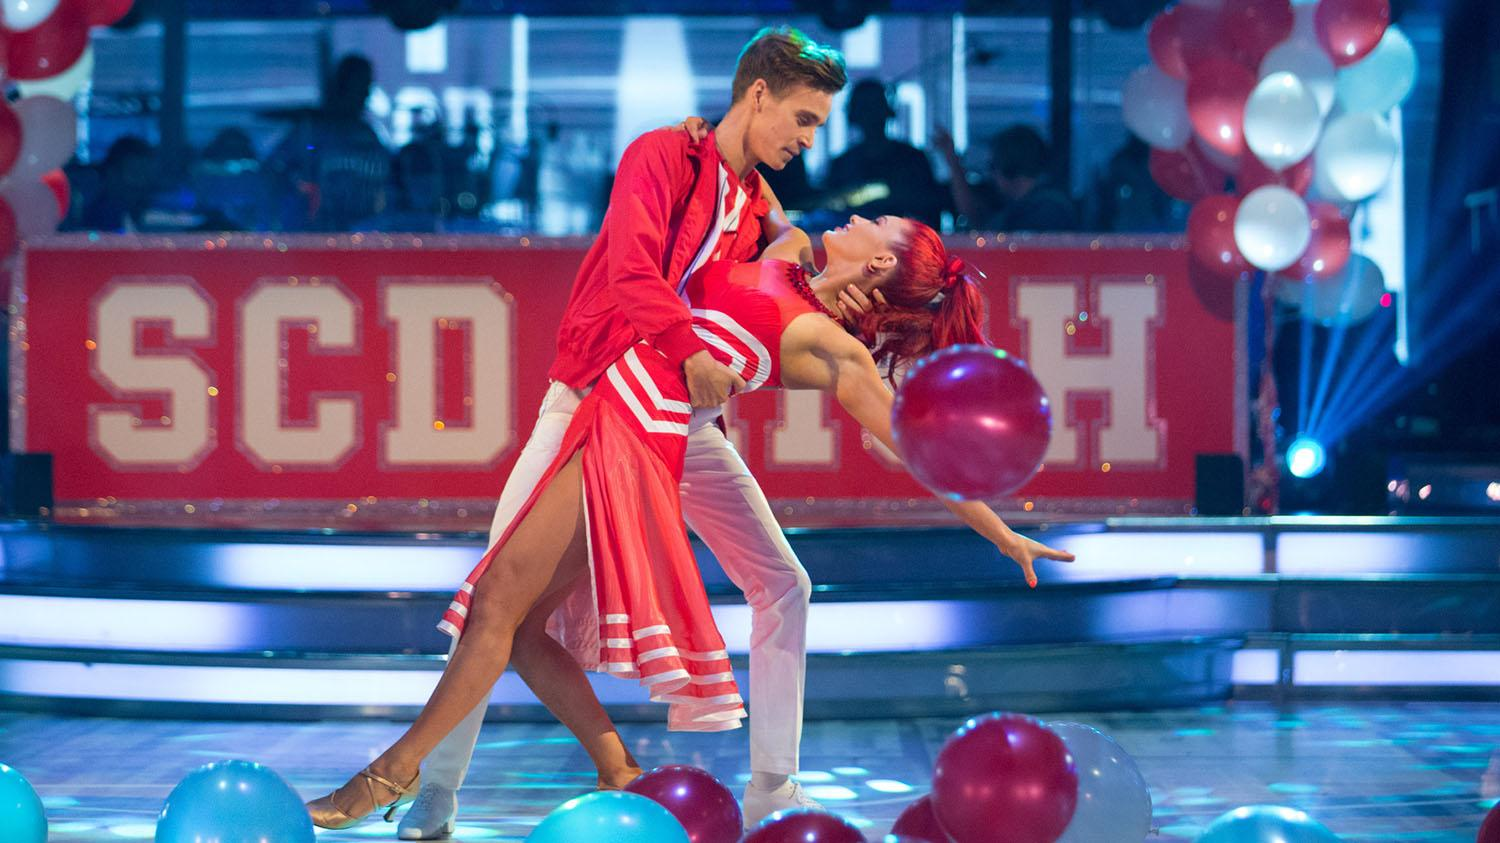 Vick Hope 'banned' from future BBC shows after Strictly 'fix' claims